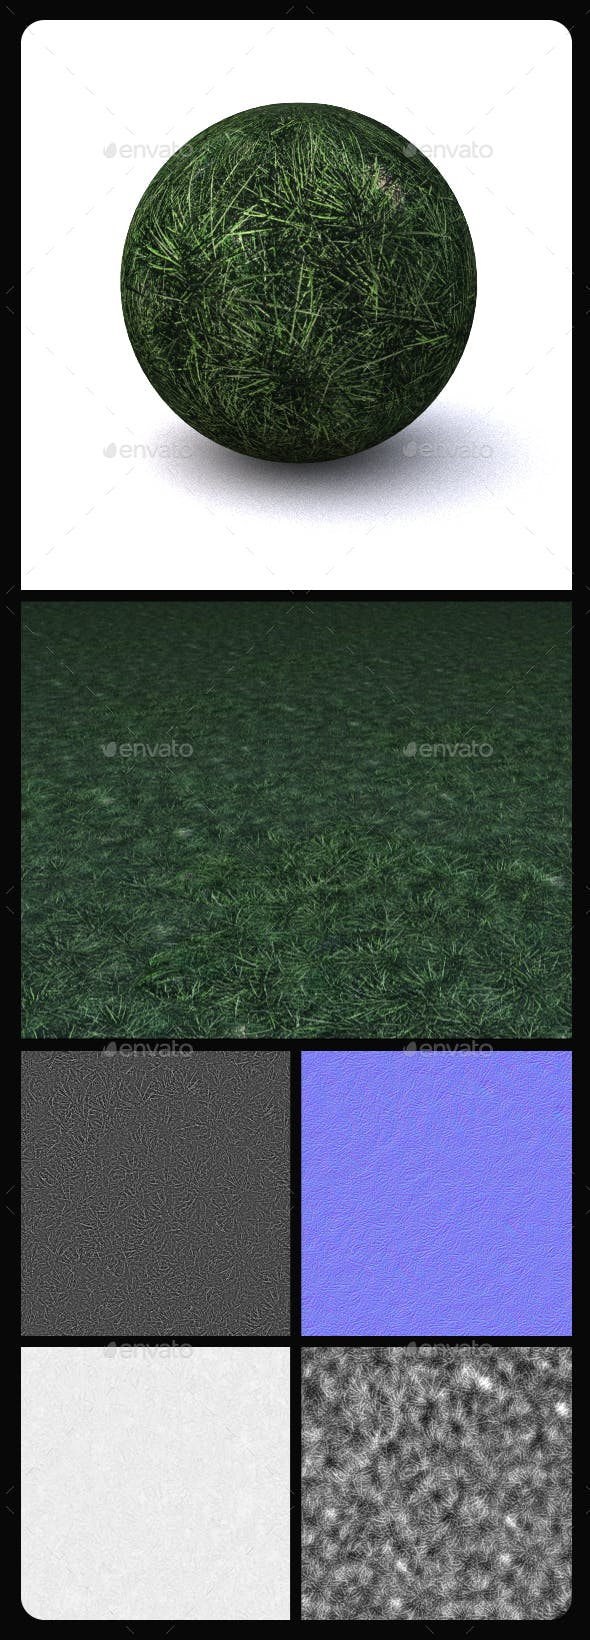 Grass Tile Texture 14 - 3DOcean Item for Sale